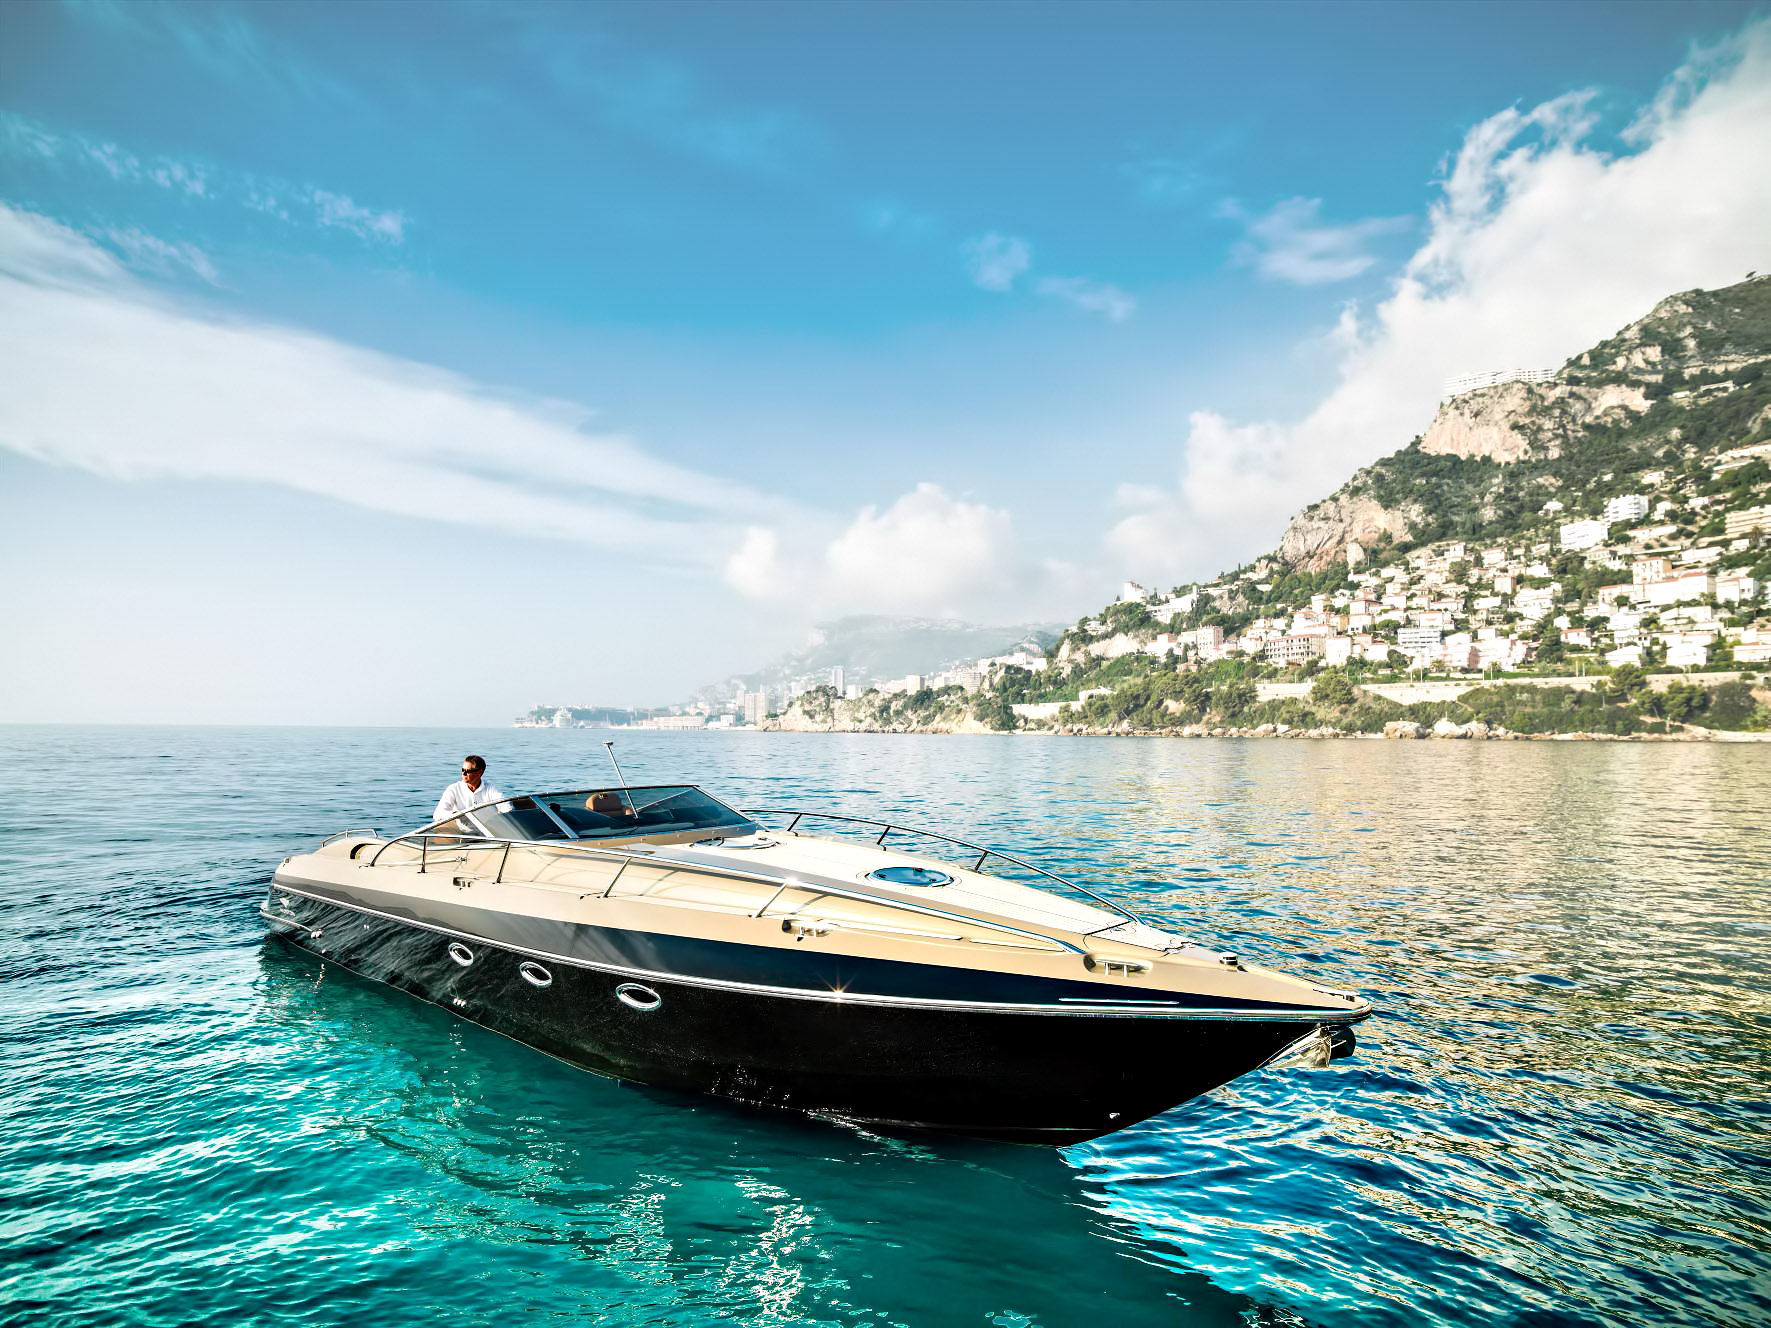 Hunton Powerboats - New Yachts and Powerboats for the Luxury Boat Market